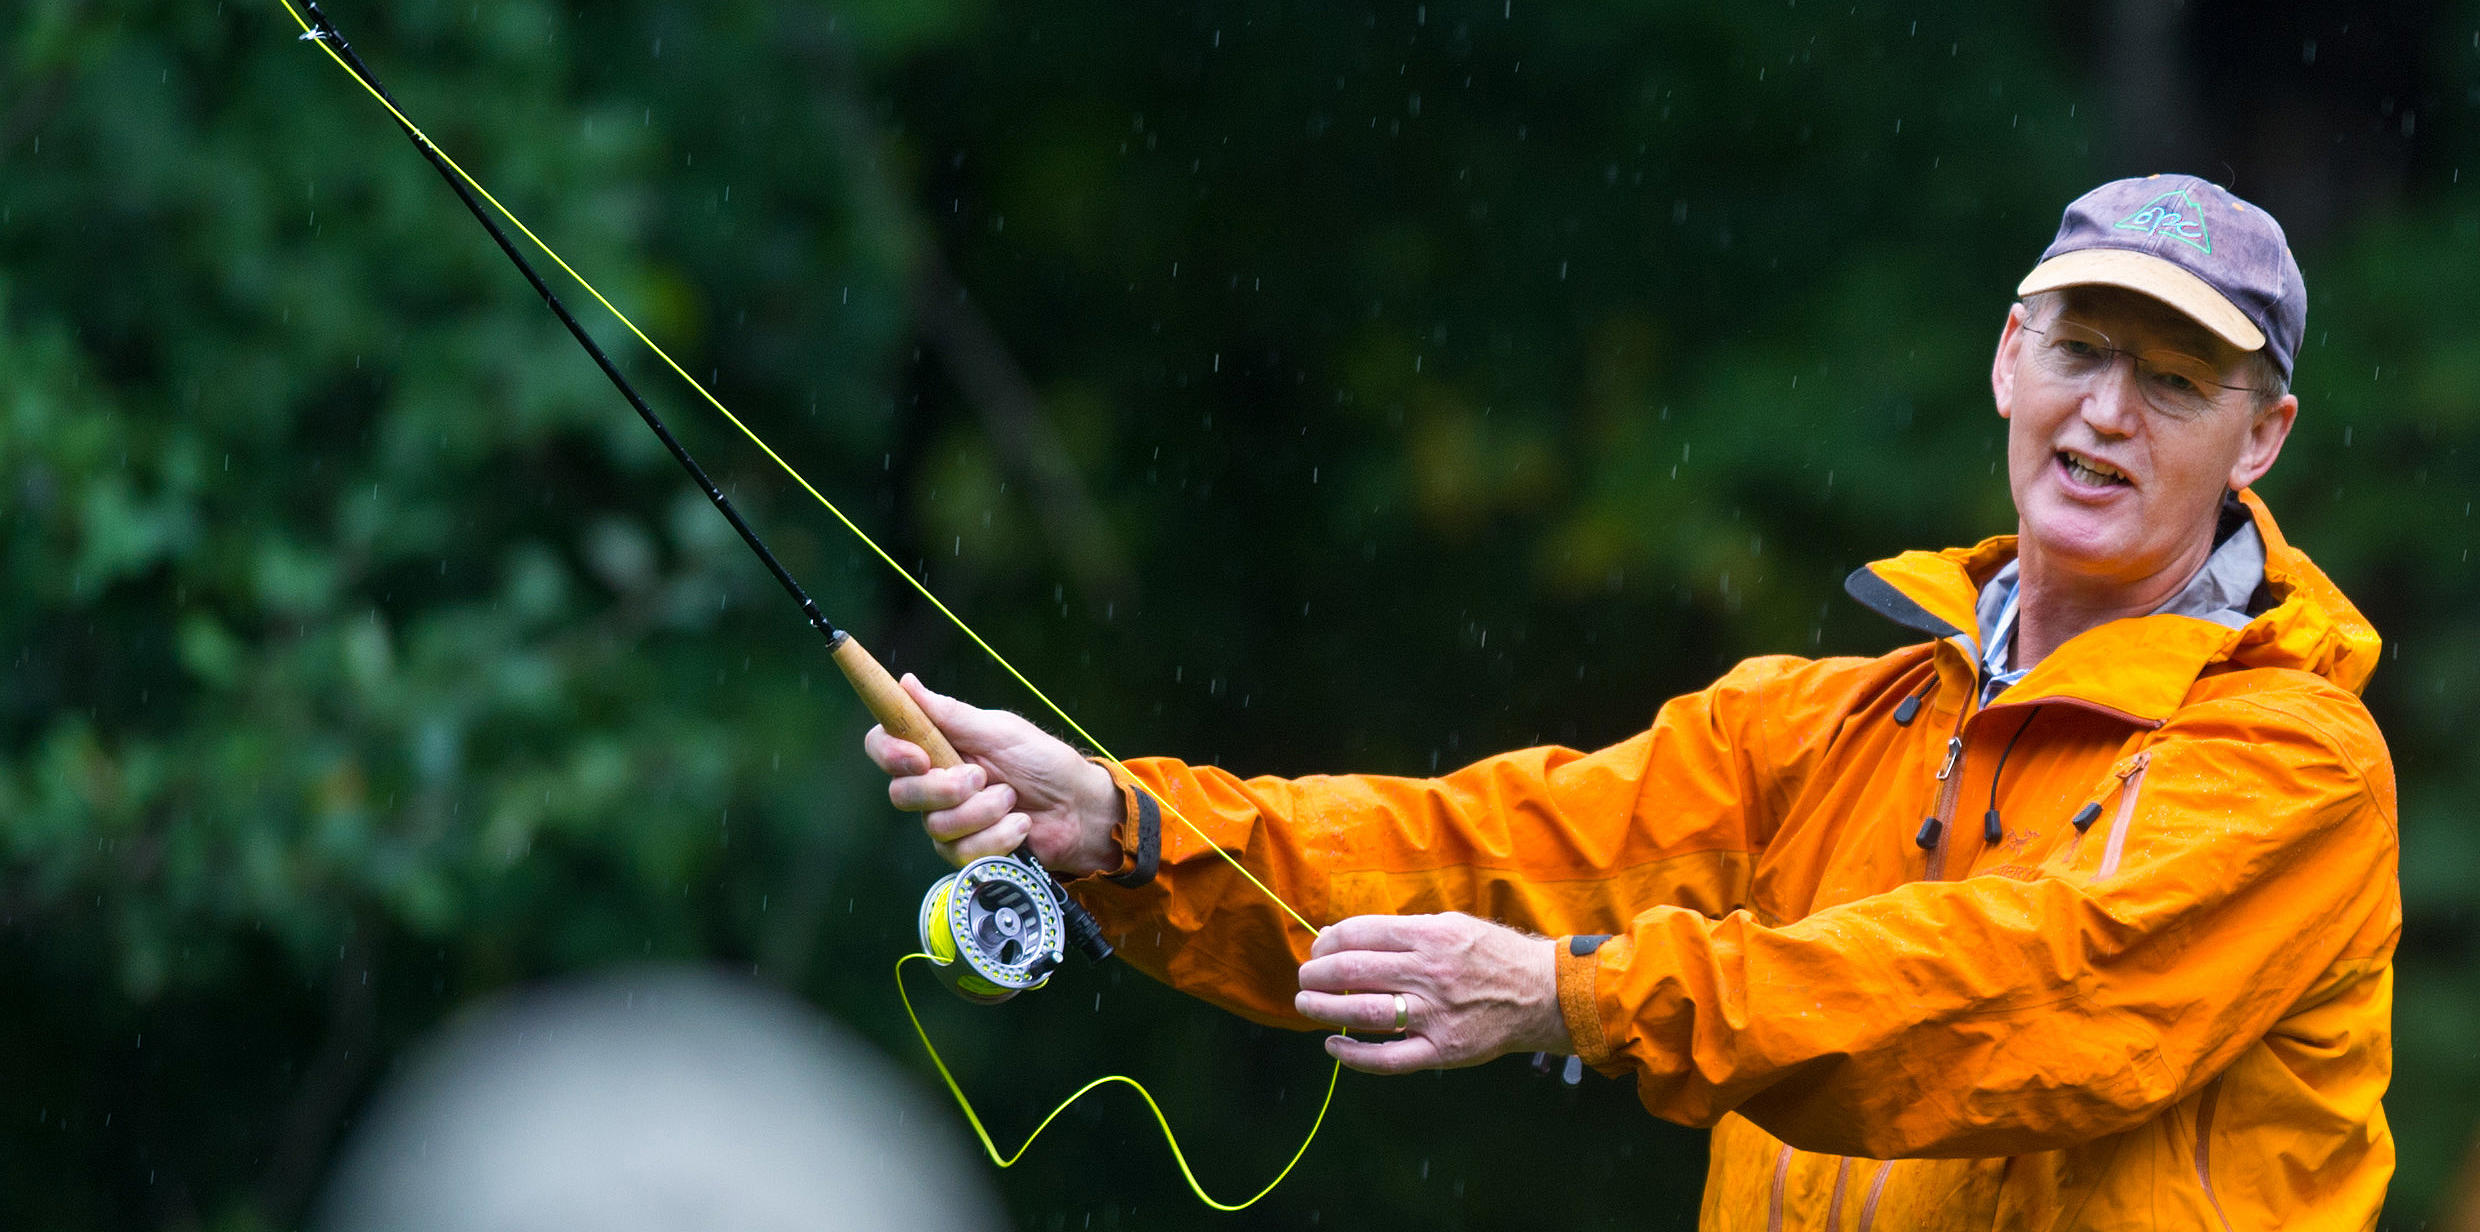 Man in orange rain coat demonstrating fly-fishing technique